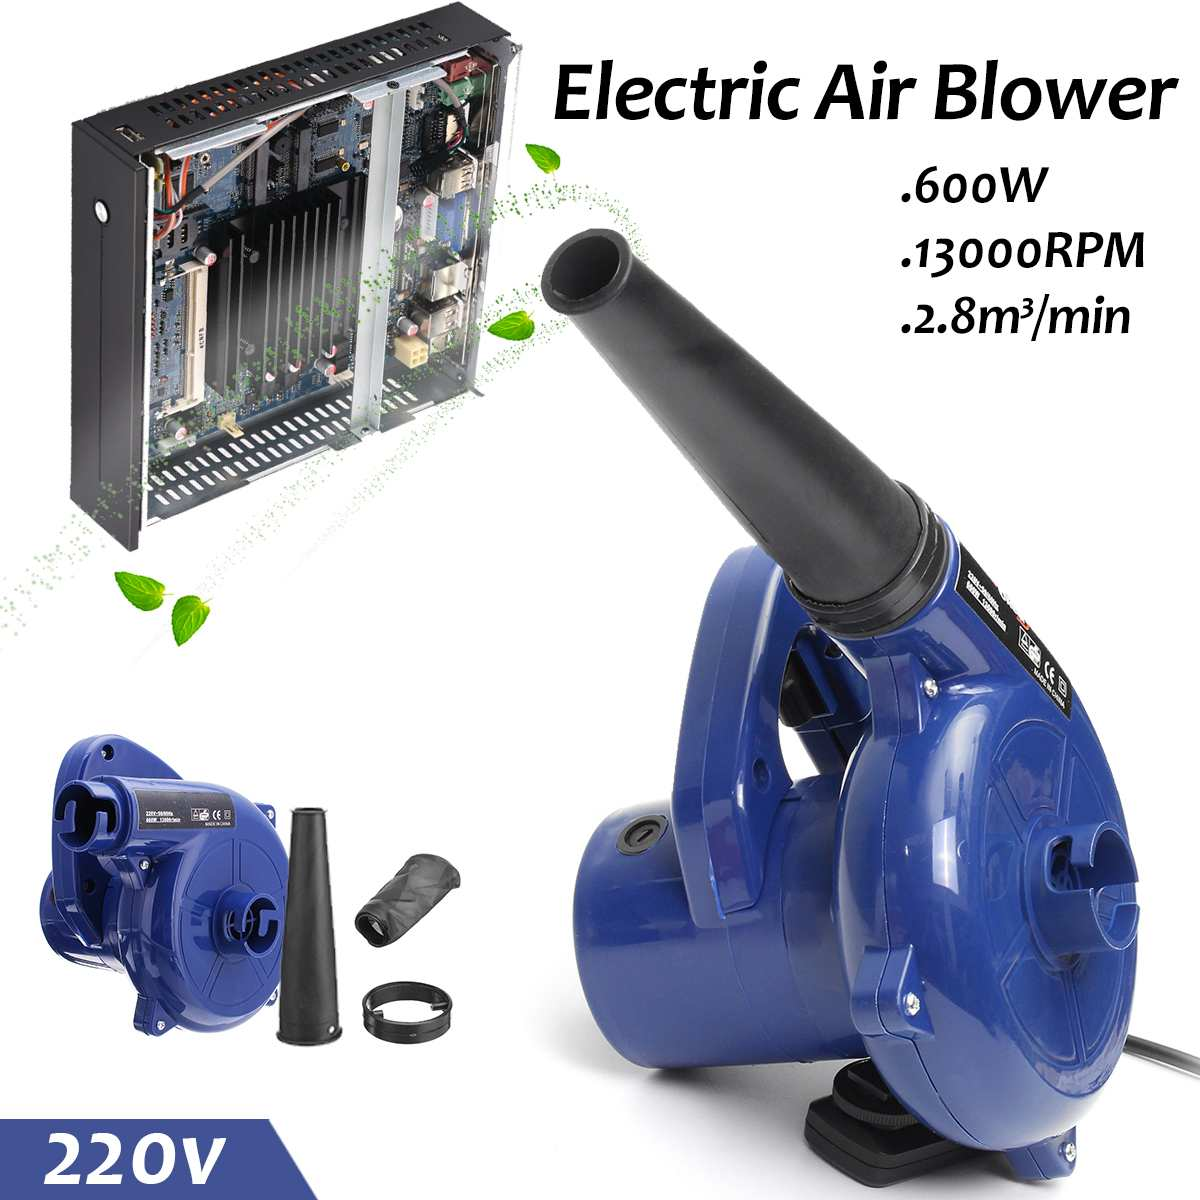 Vacuum Computer Cleaner Electric Industrial Air Blower Dust Blowing Dust Computer Dust Collector Air Blower 600W 220V Vacuum